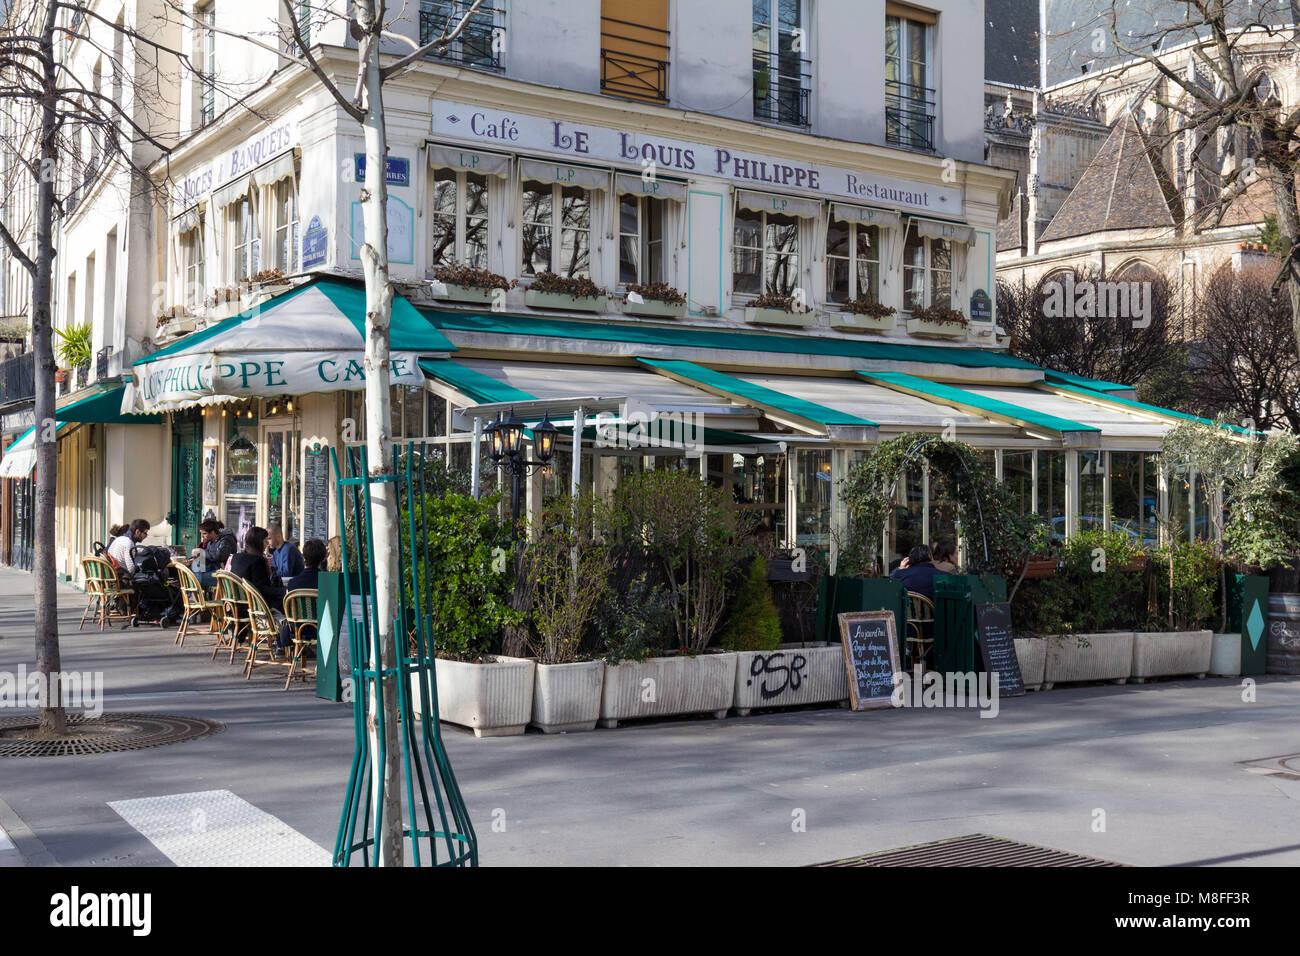 Paris, France-March 11 ,2018: The cafe Louis Philippe situated in a busy corner of the Marais, just at the end of - Stock Image